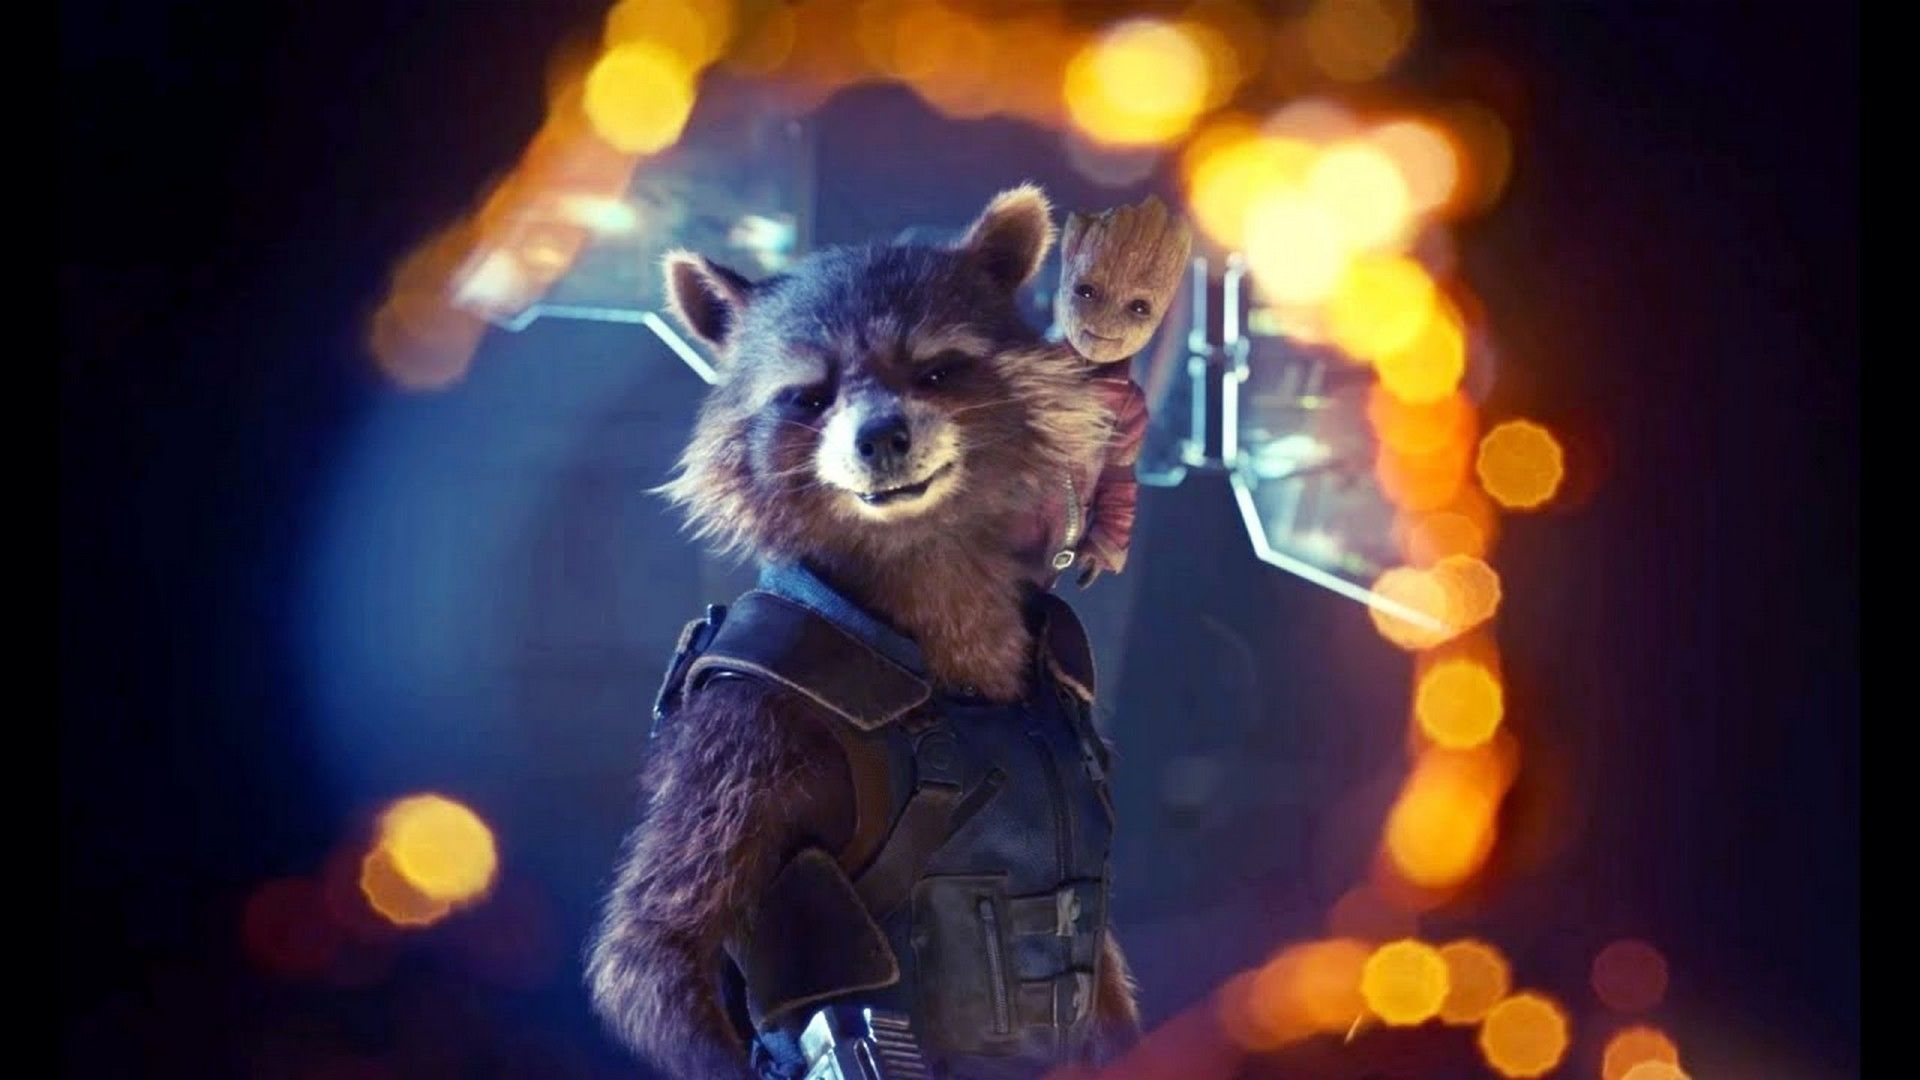 Guardians Of The Galaxy Vol 2 Wallpaper Hd Guardians Of The